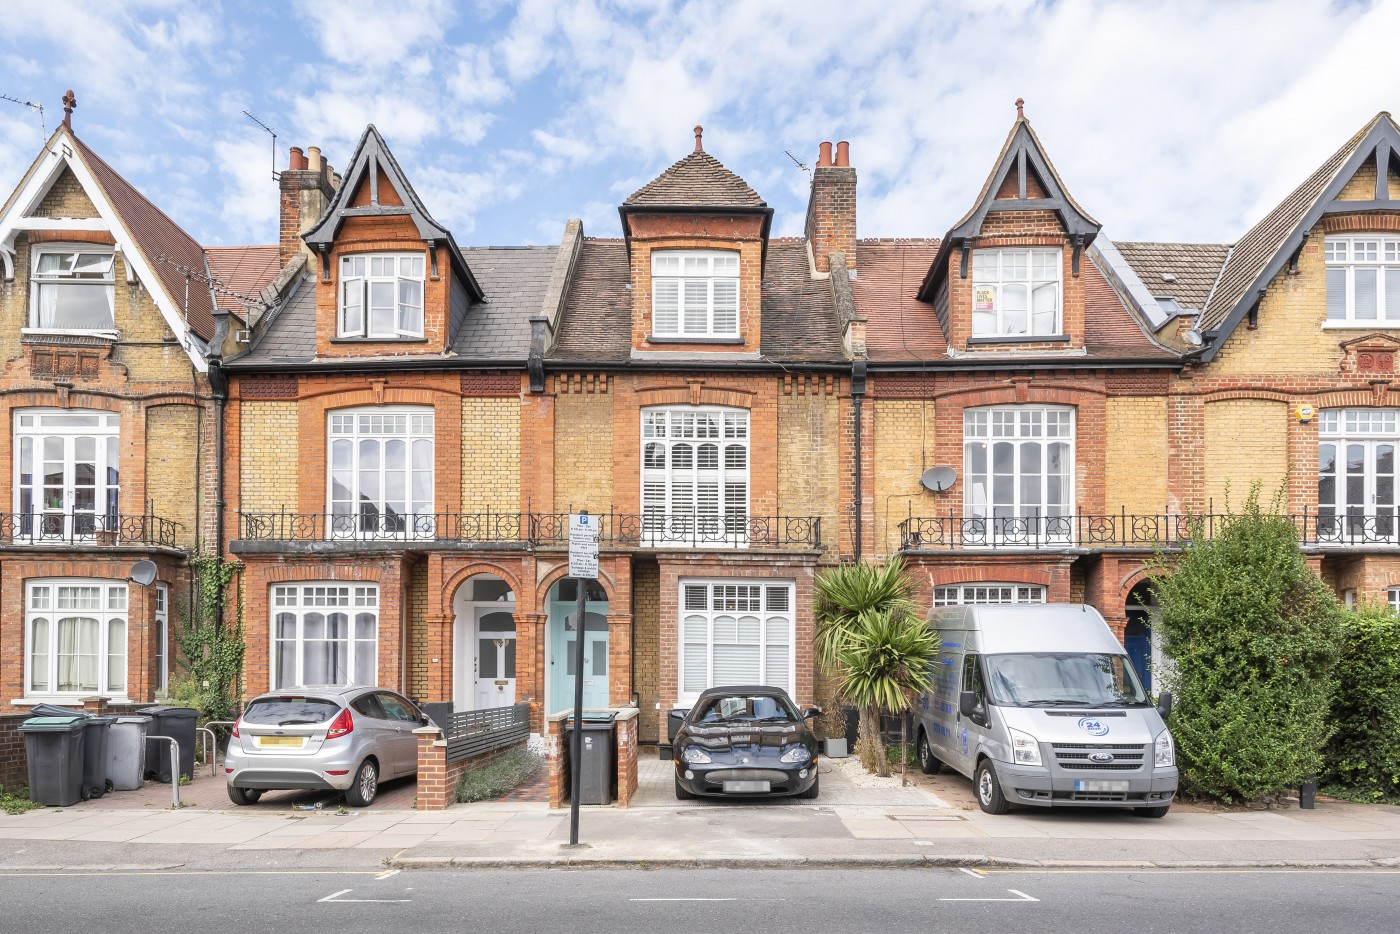 Images for Stapleton Hall Road N4 3QE EAID:931013c273837aec744cf2e7889cb460 BID:1